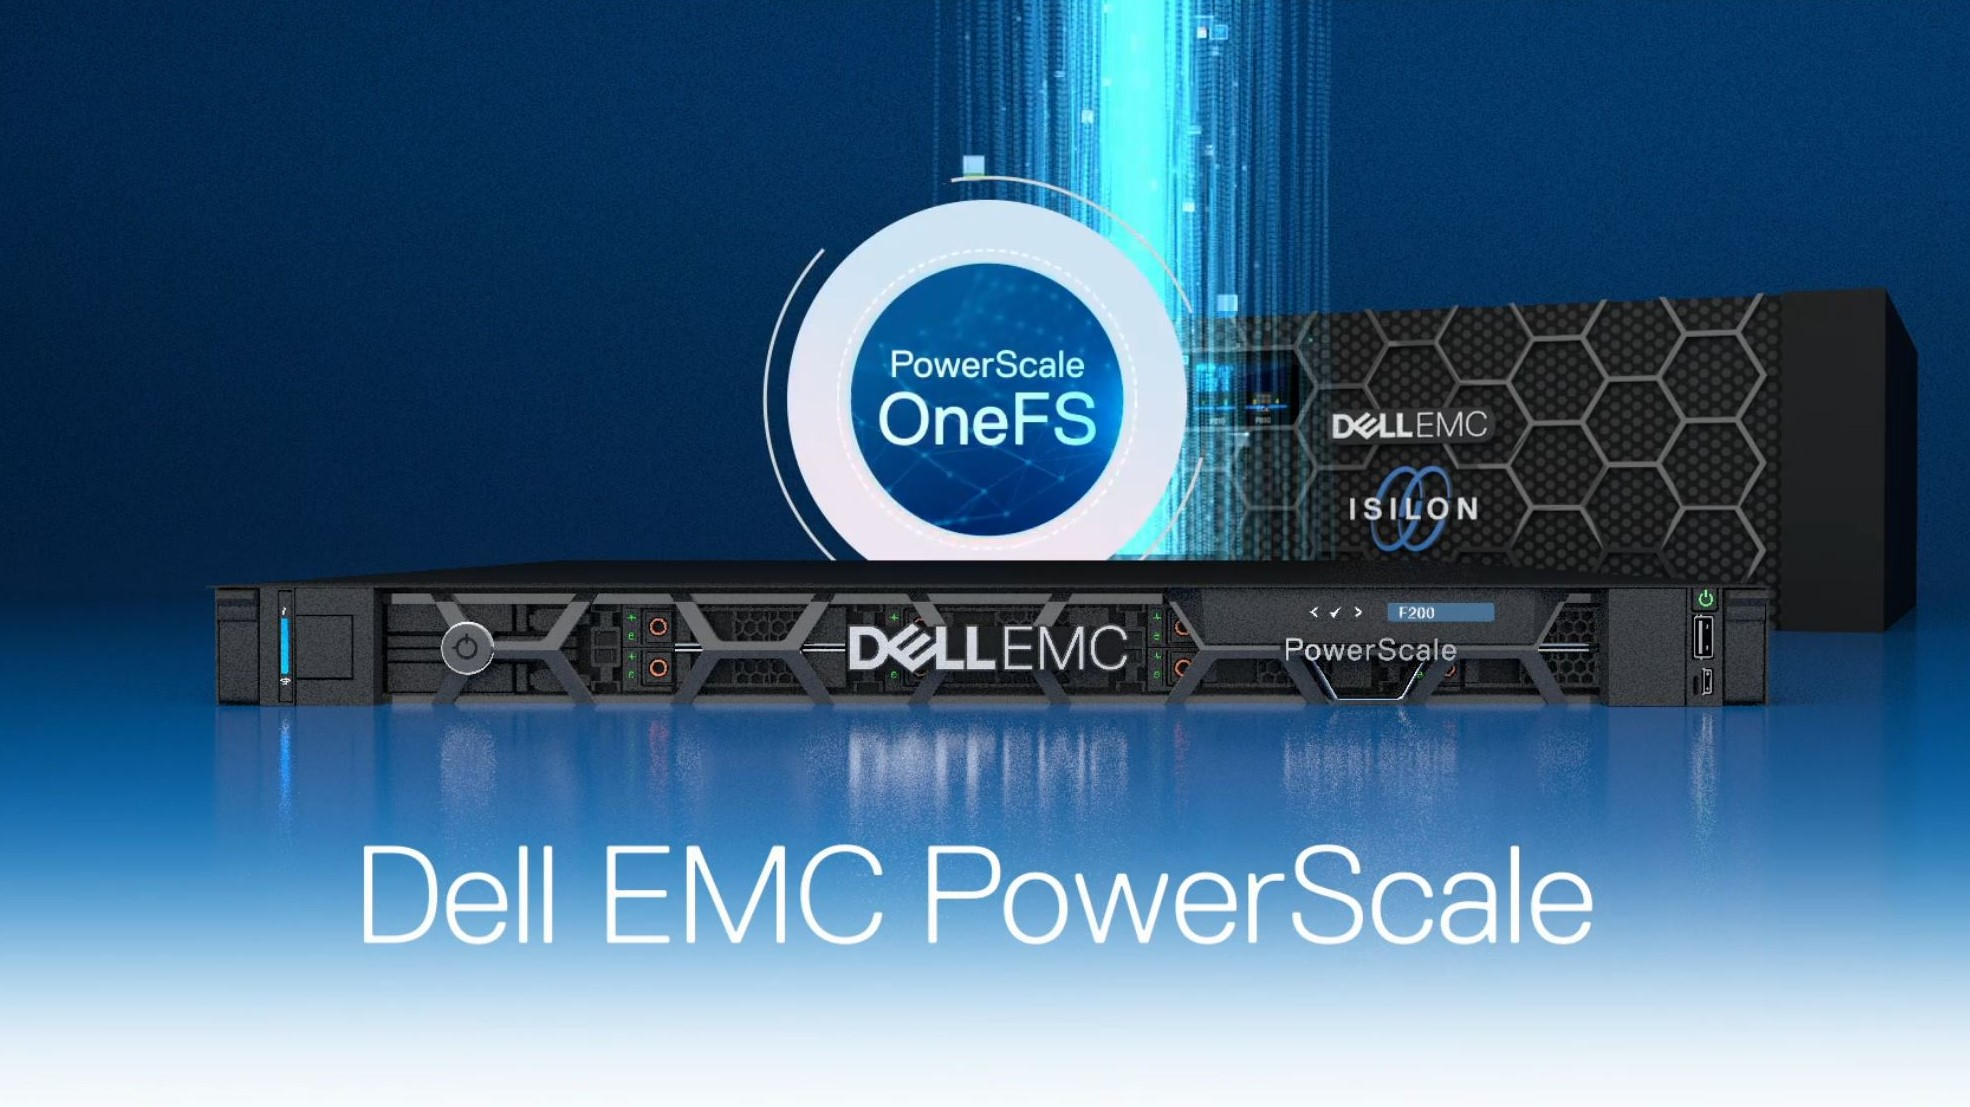 Dell EMC PowerScale wants to conquer all your unstructured data thumbnail